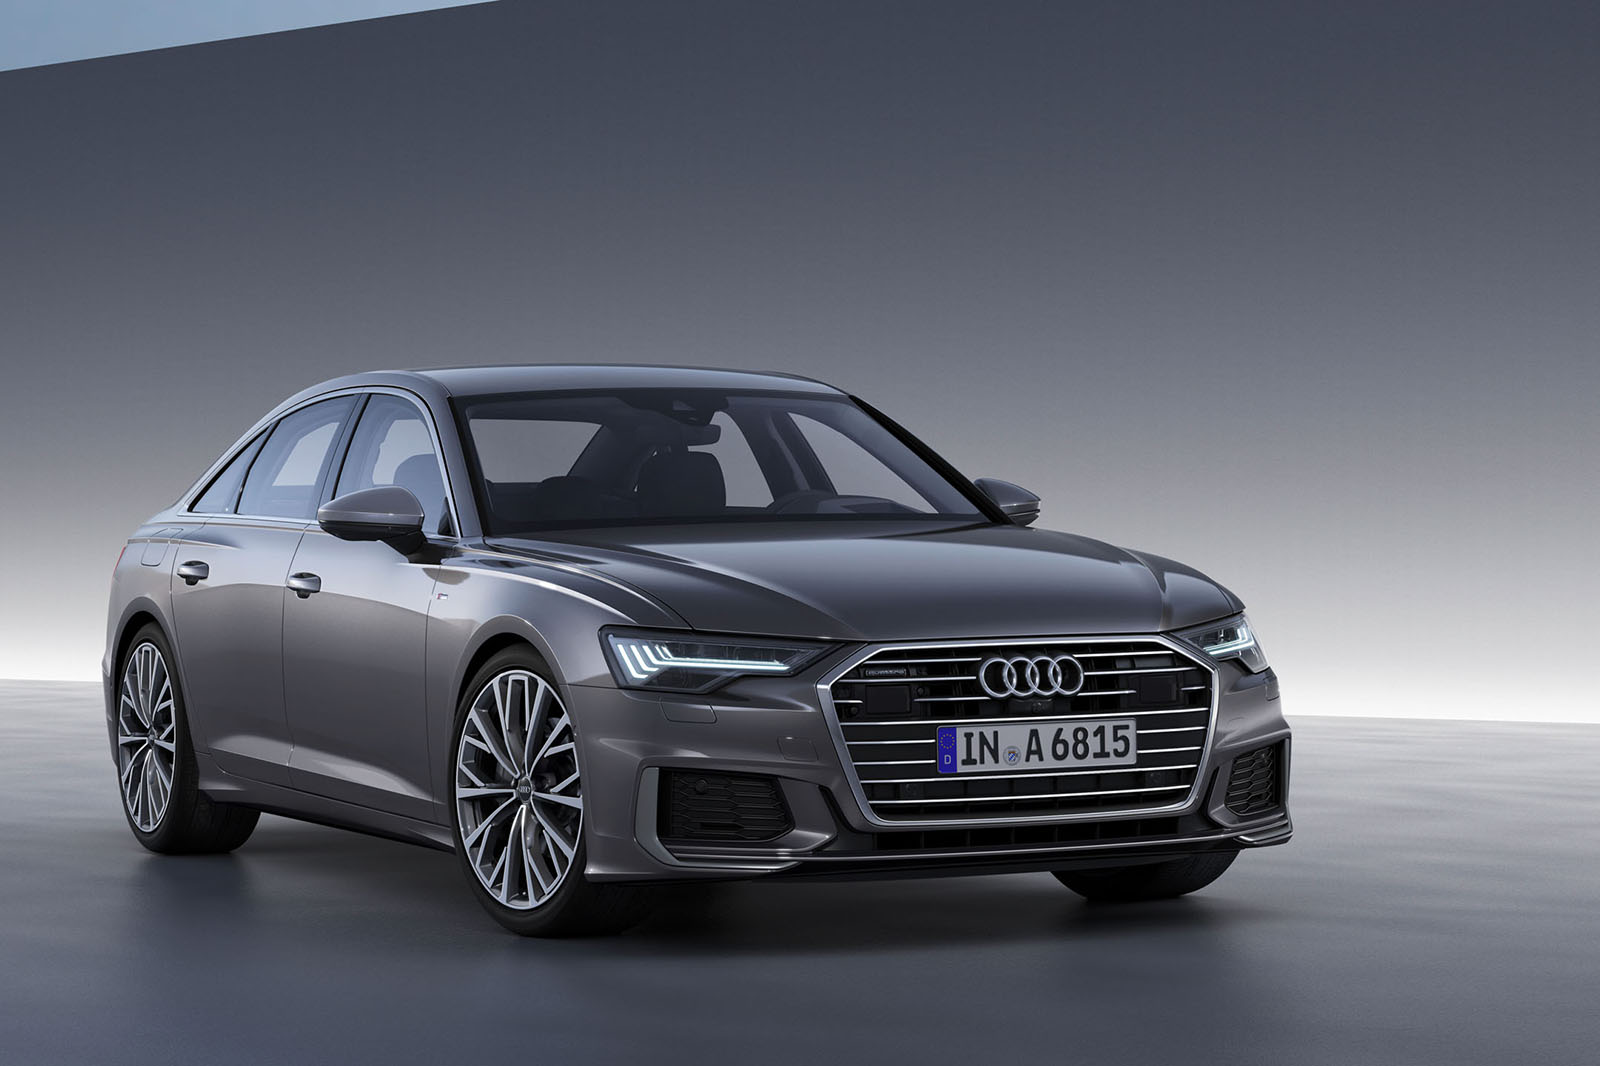 New Audi A6 Guns For 5 Series With Mild Hybrid Power And A8 Cabin